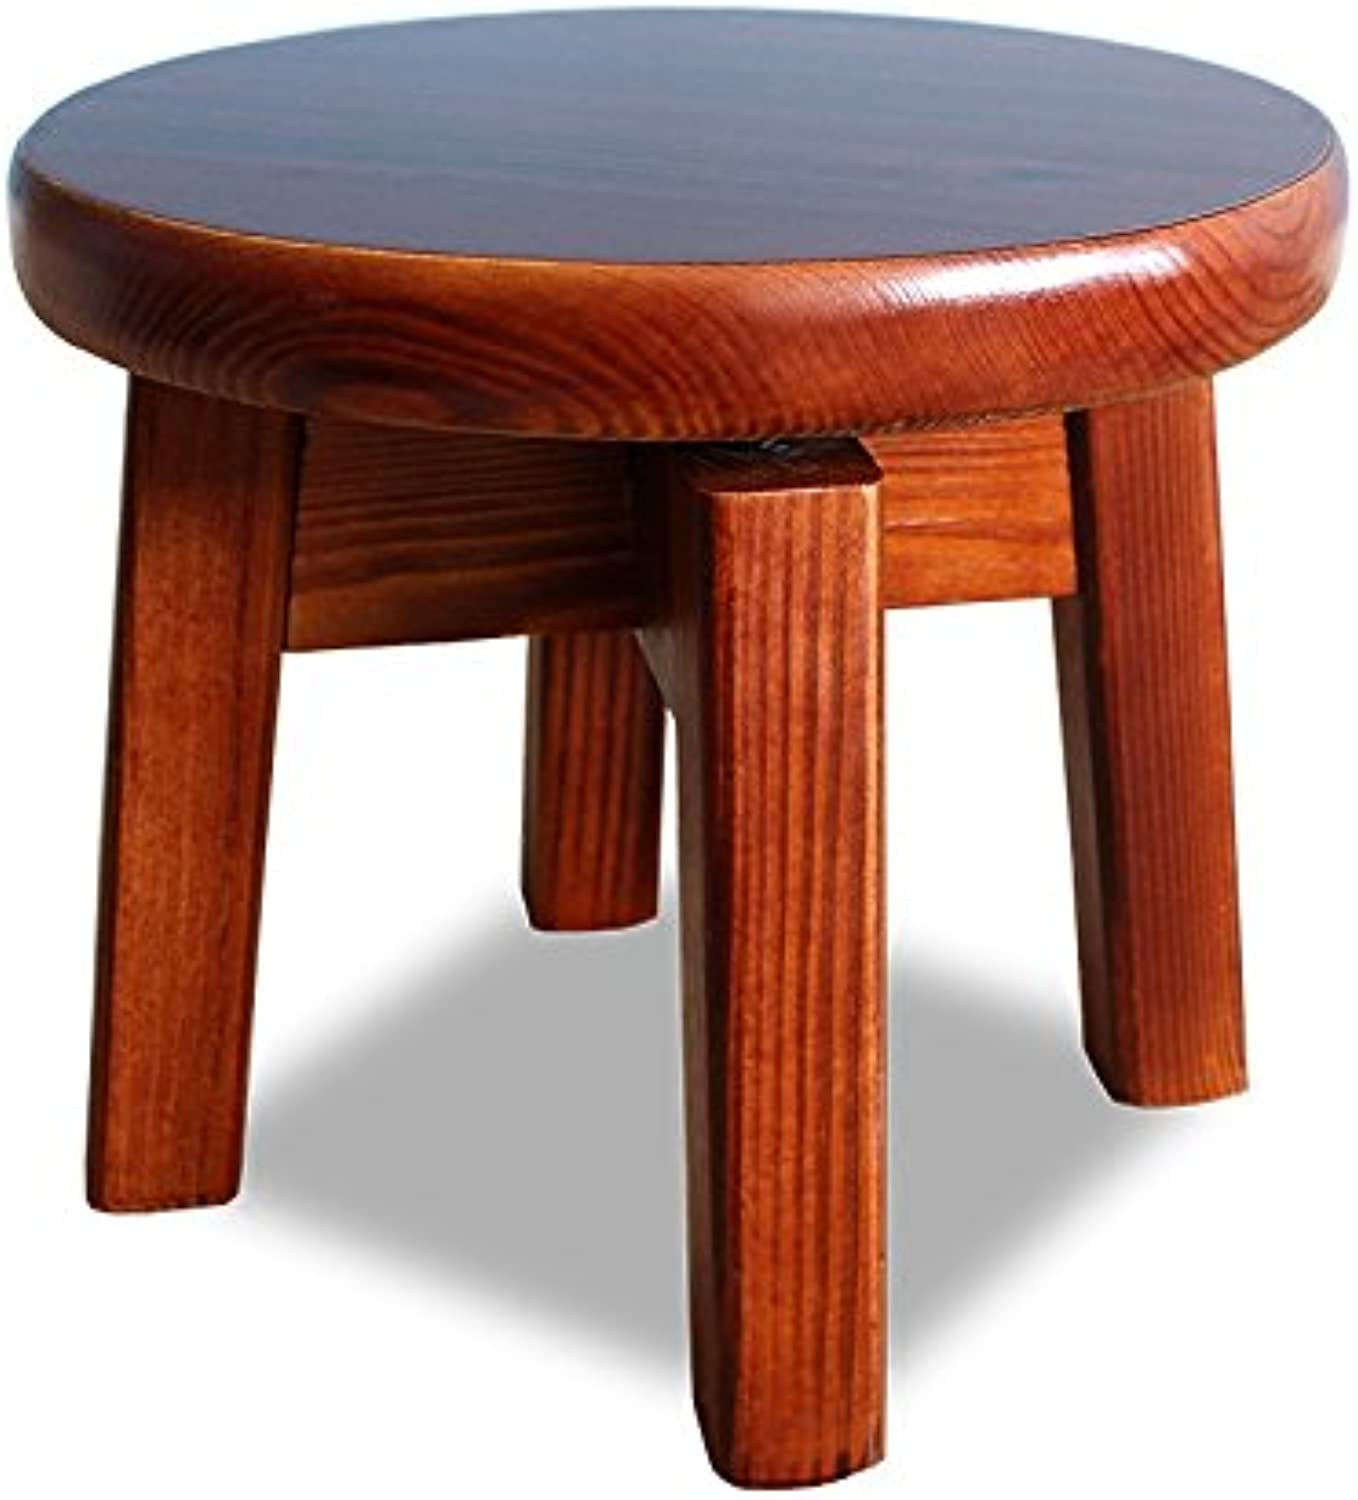 Household Solid Wood Small Stool redating Small Bench Wooden Stool Simple Small Stool 30  30  26cm